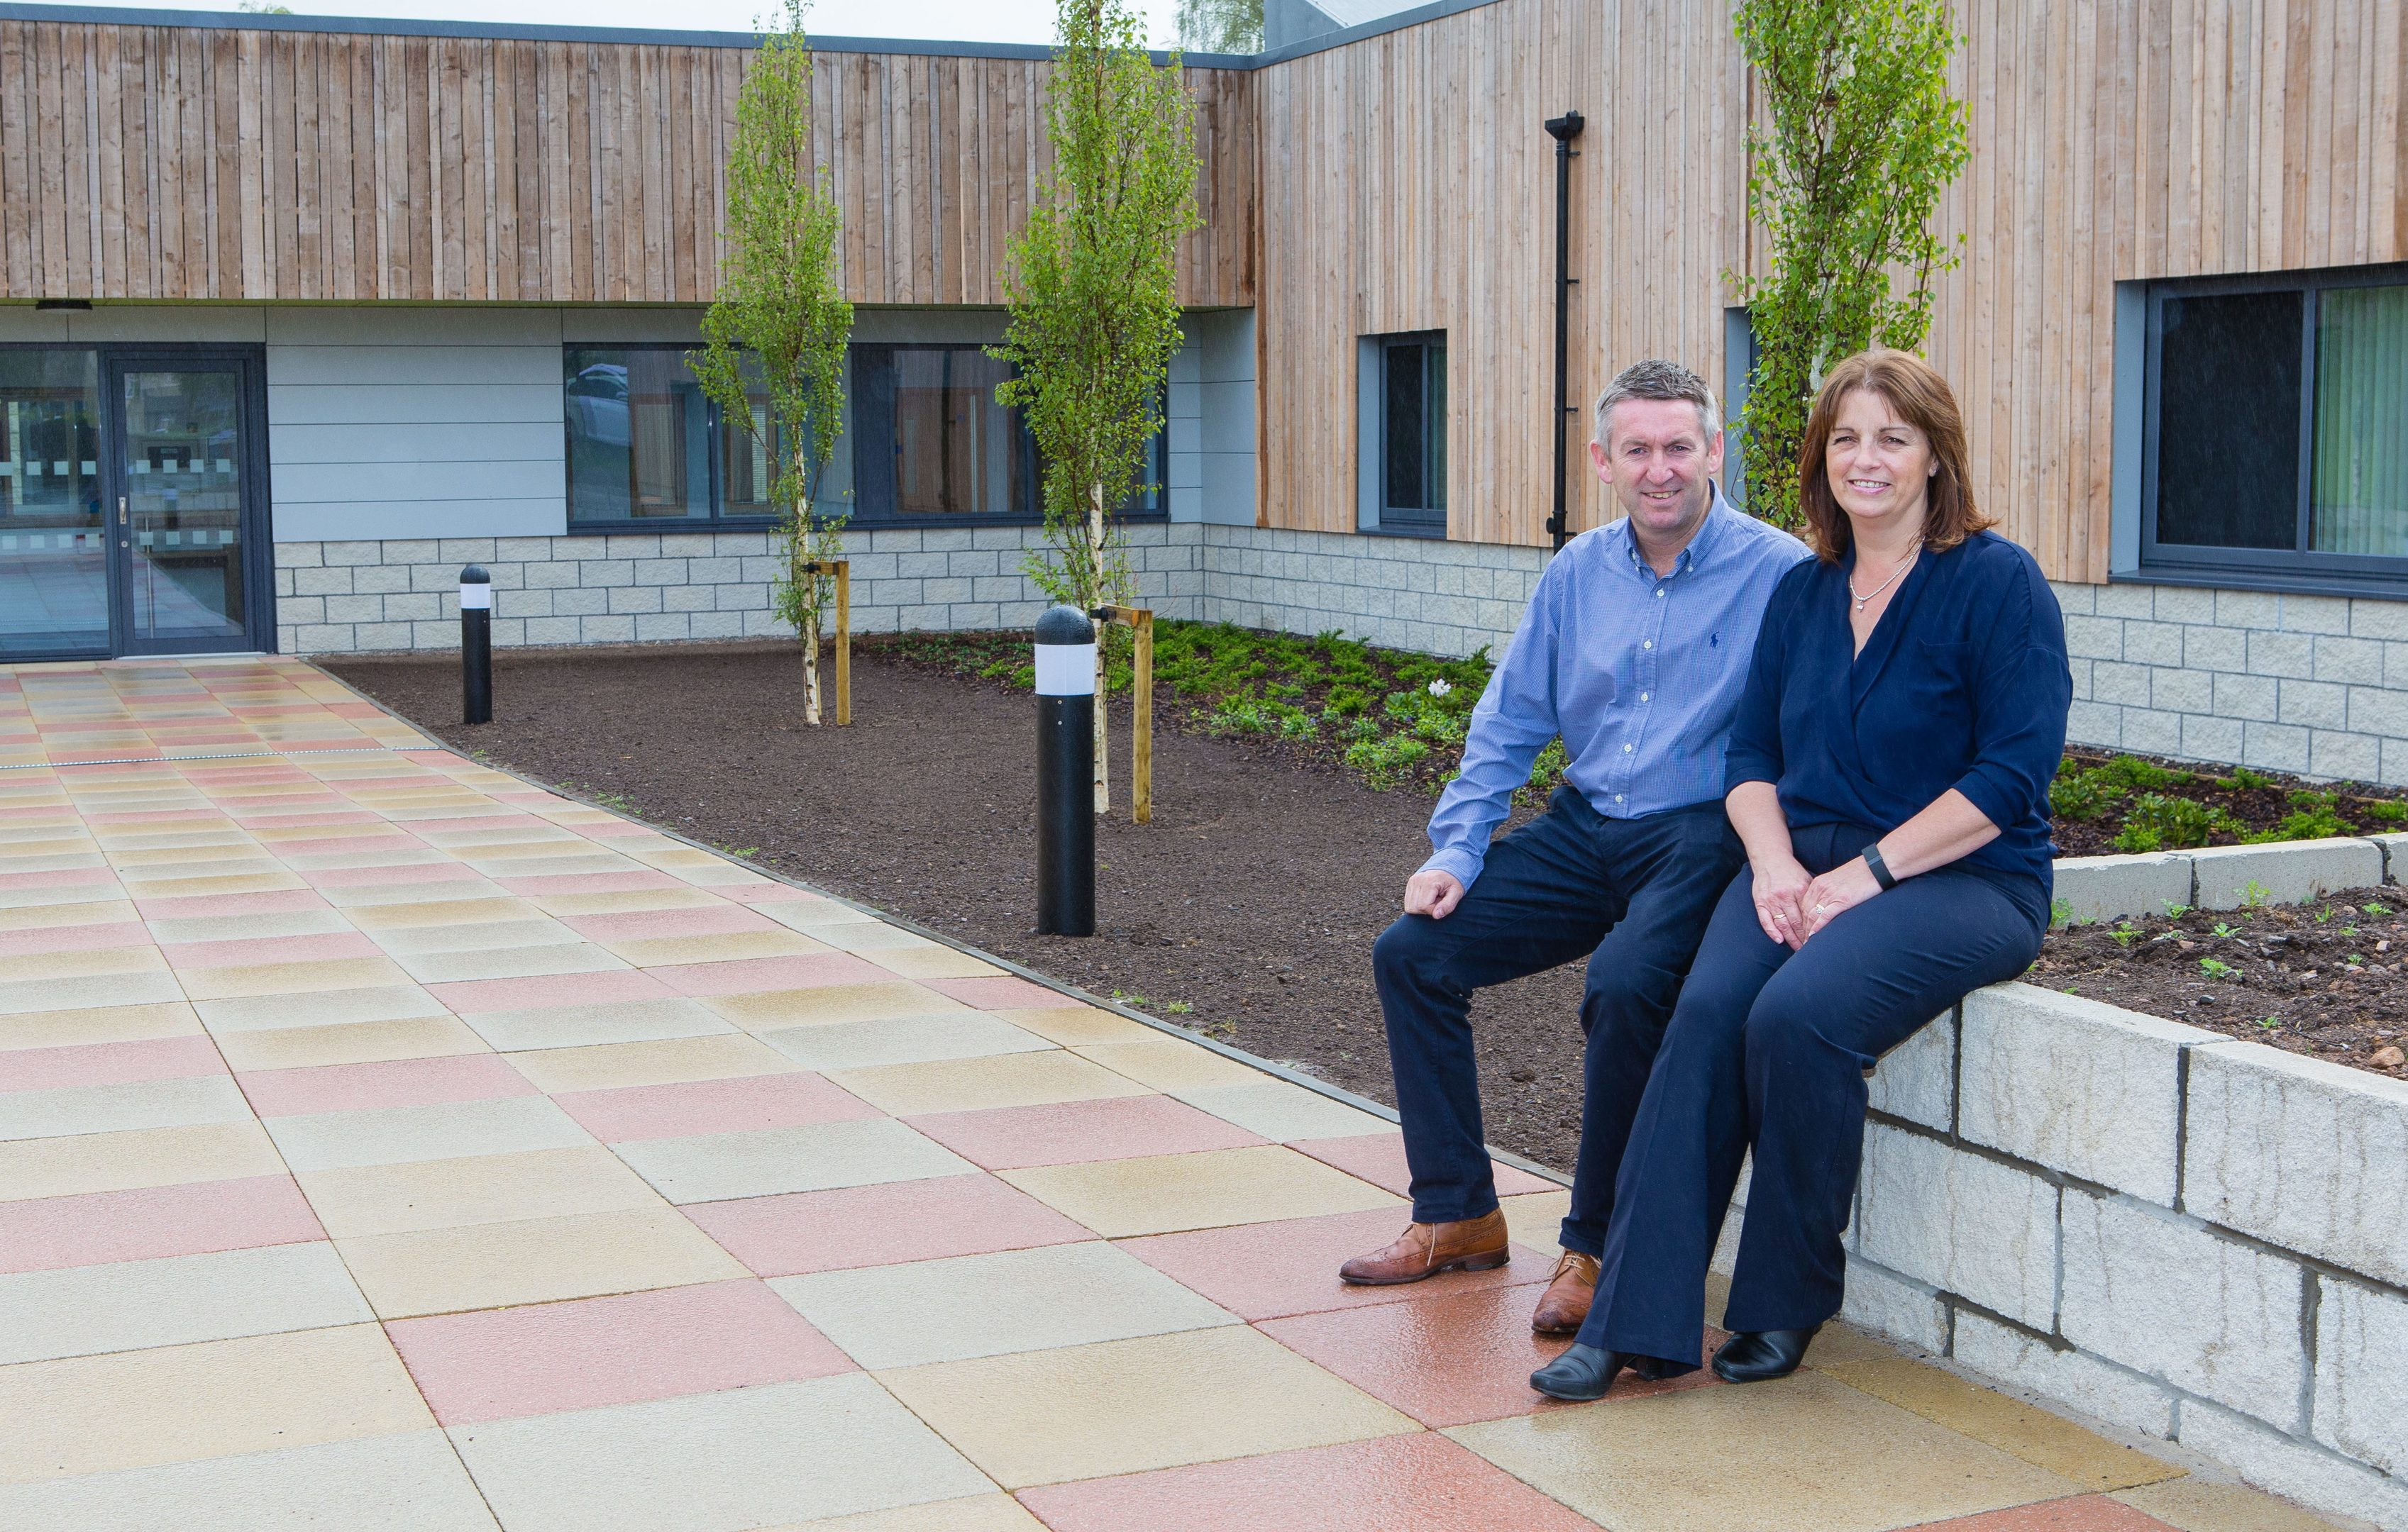 Clinical Service manager Lesley Tweedie and Head of Estates, Project Director Alan Lawson outside the new Intensive Psychiatric Care Unit at Stratheden Hospital.